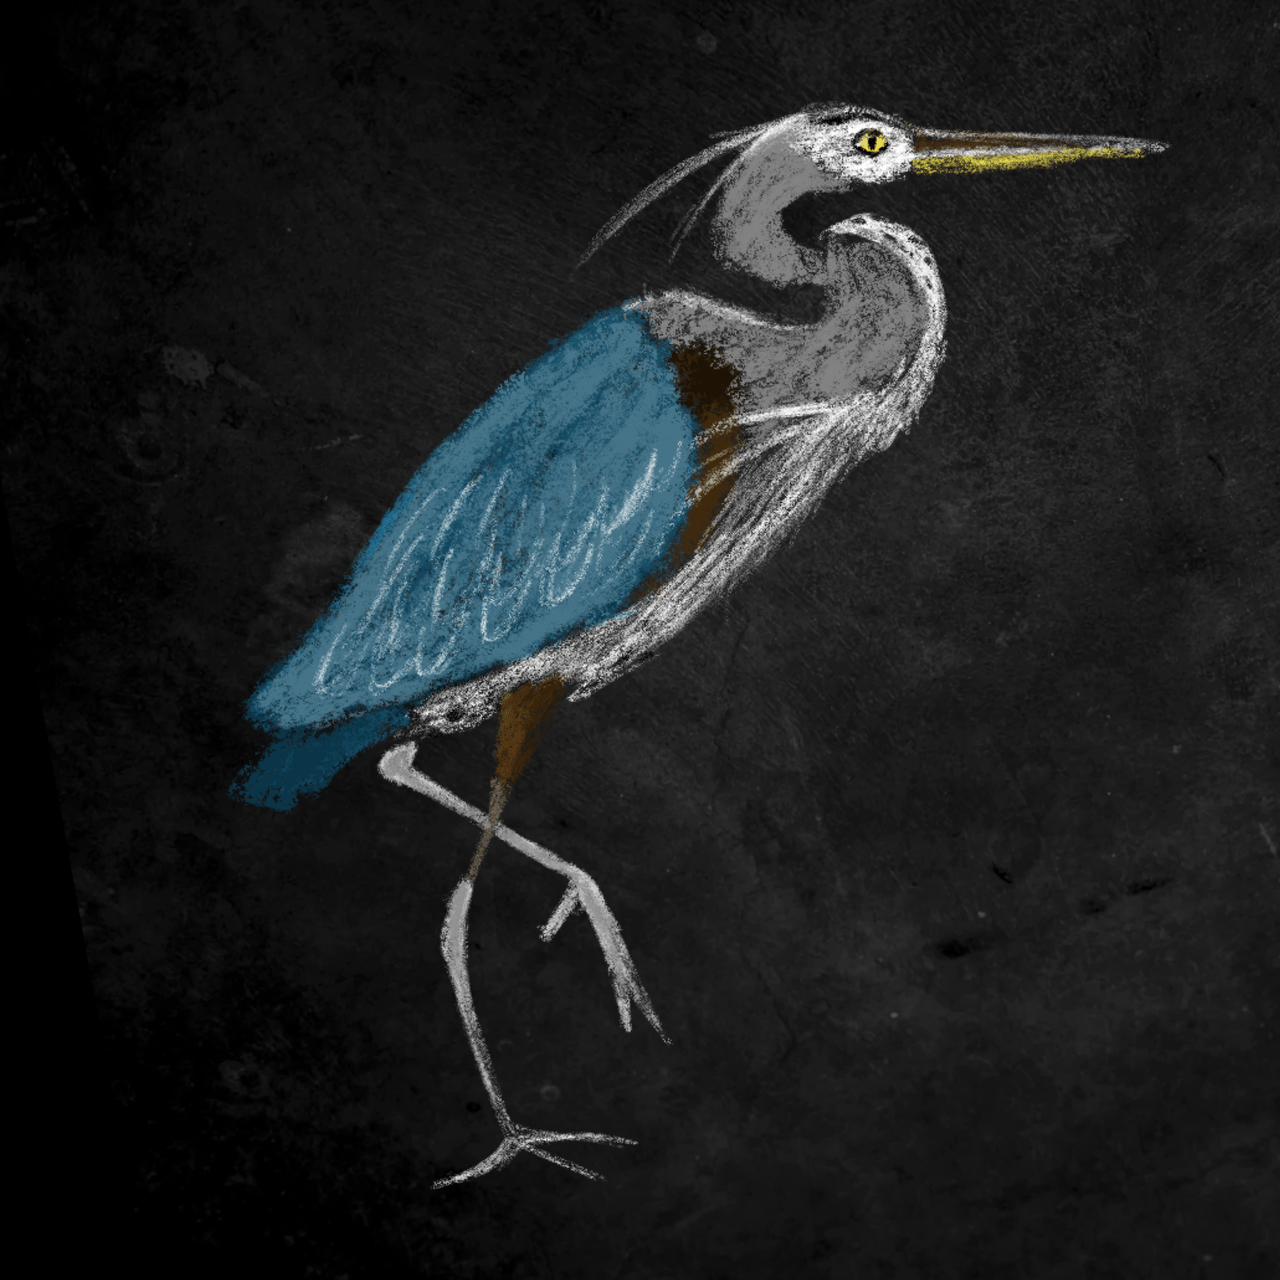 Heron drawn by Ceindy Doodles